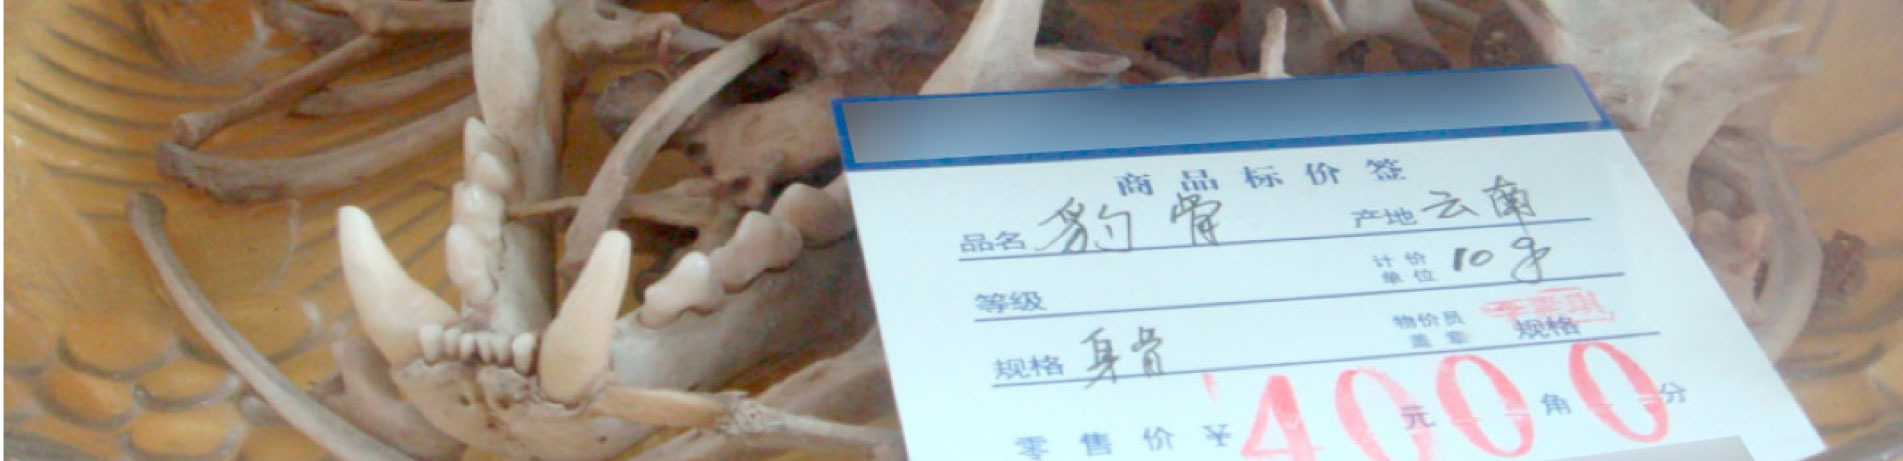 Leopard bone for sale, Chongqing, China